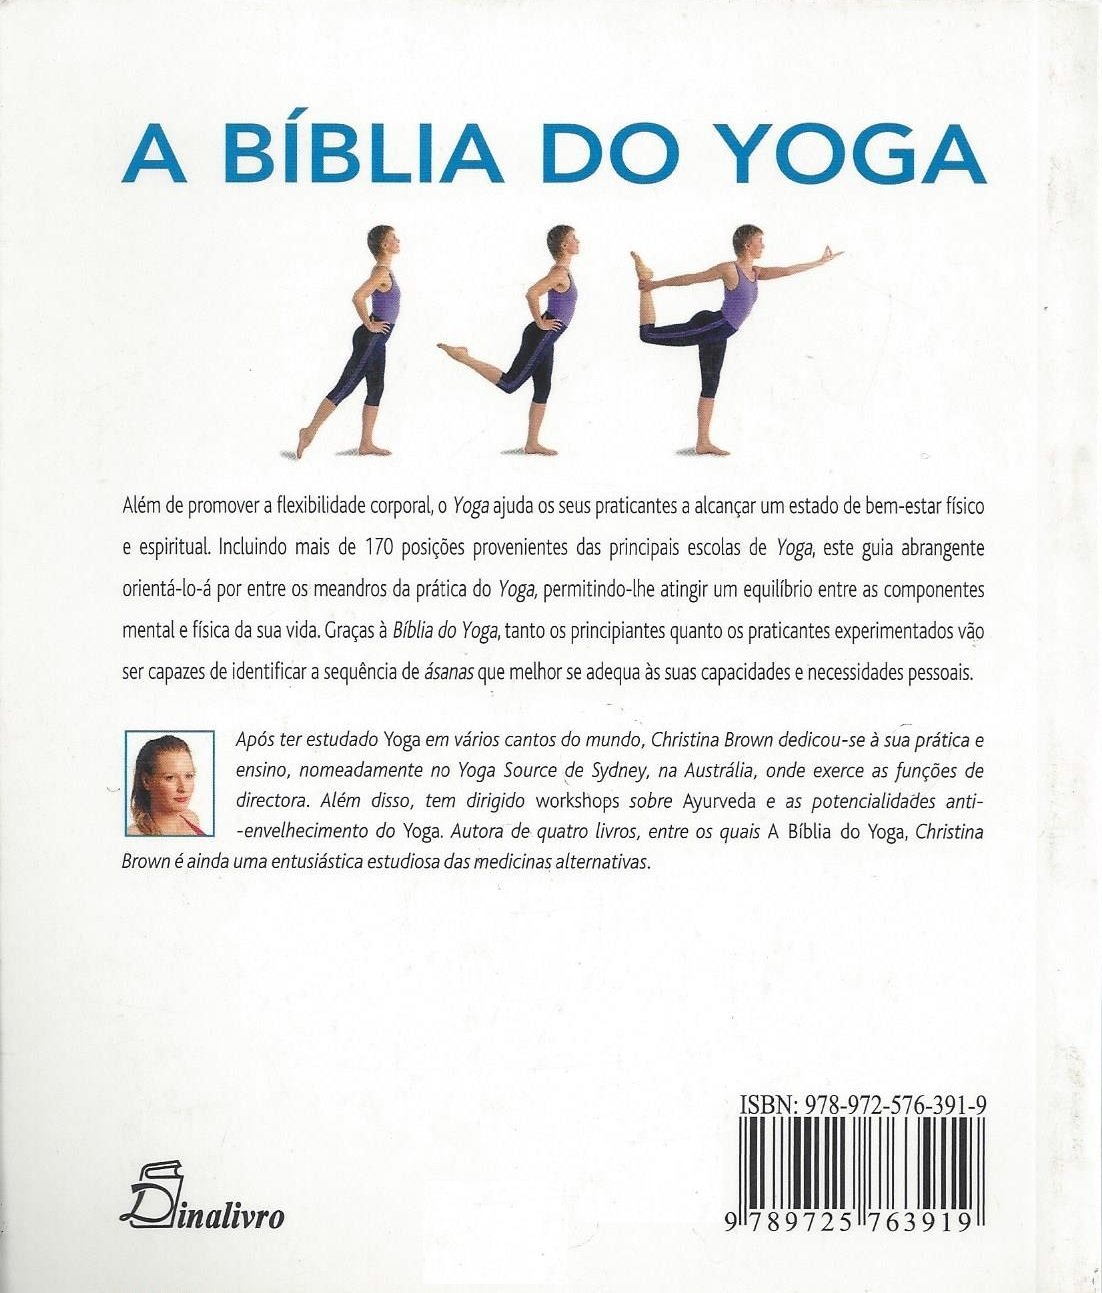 port).biblia do yoga: Amazon.es: Christina Brown: Libros